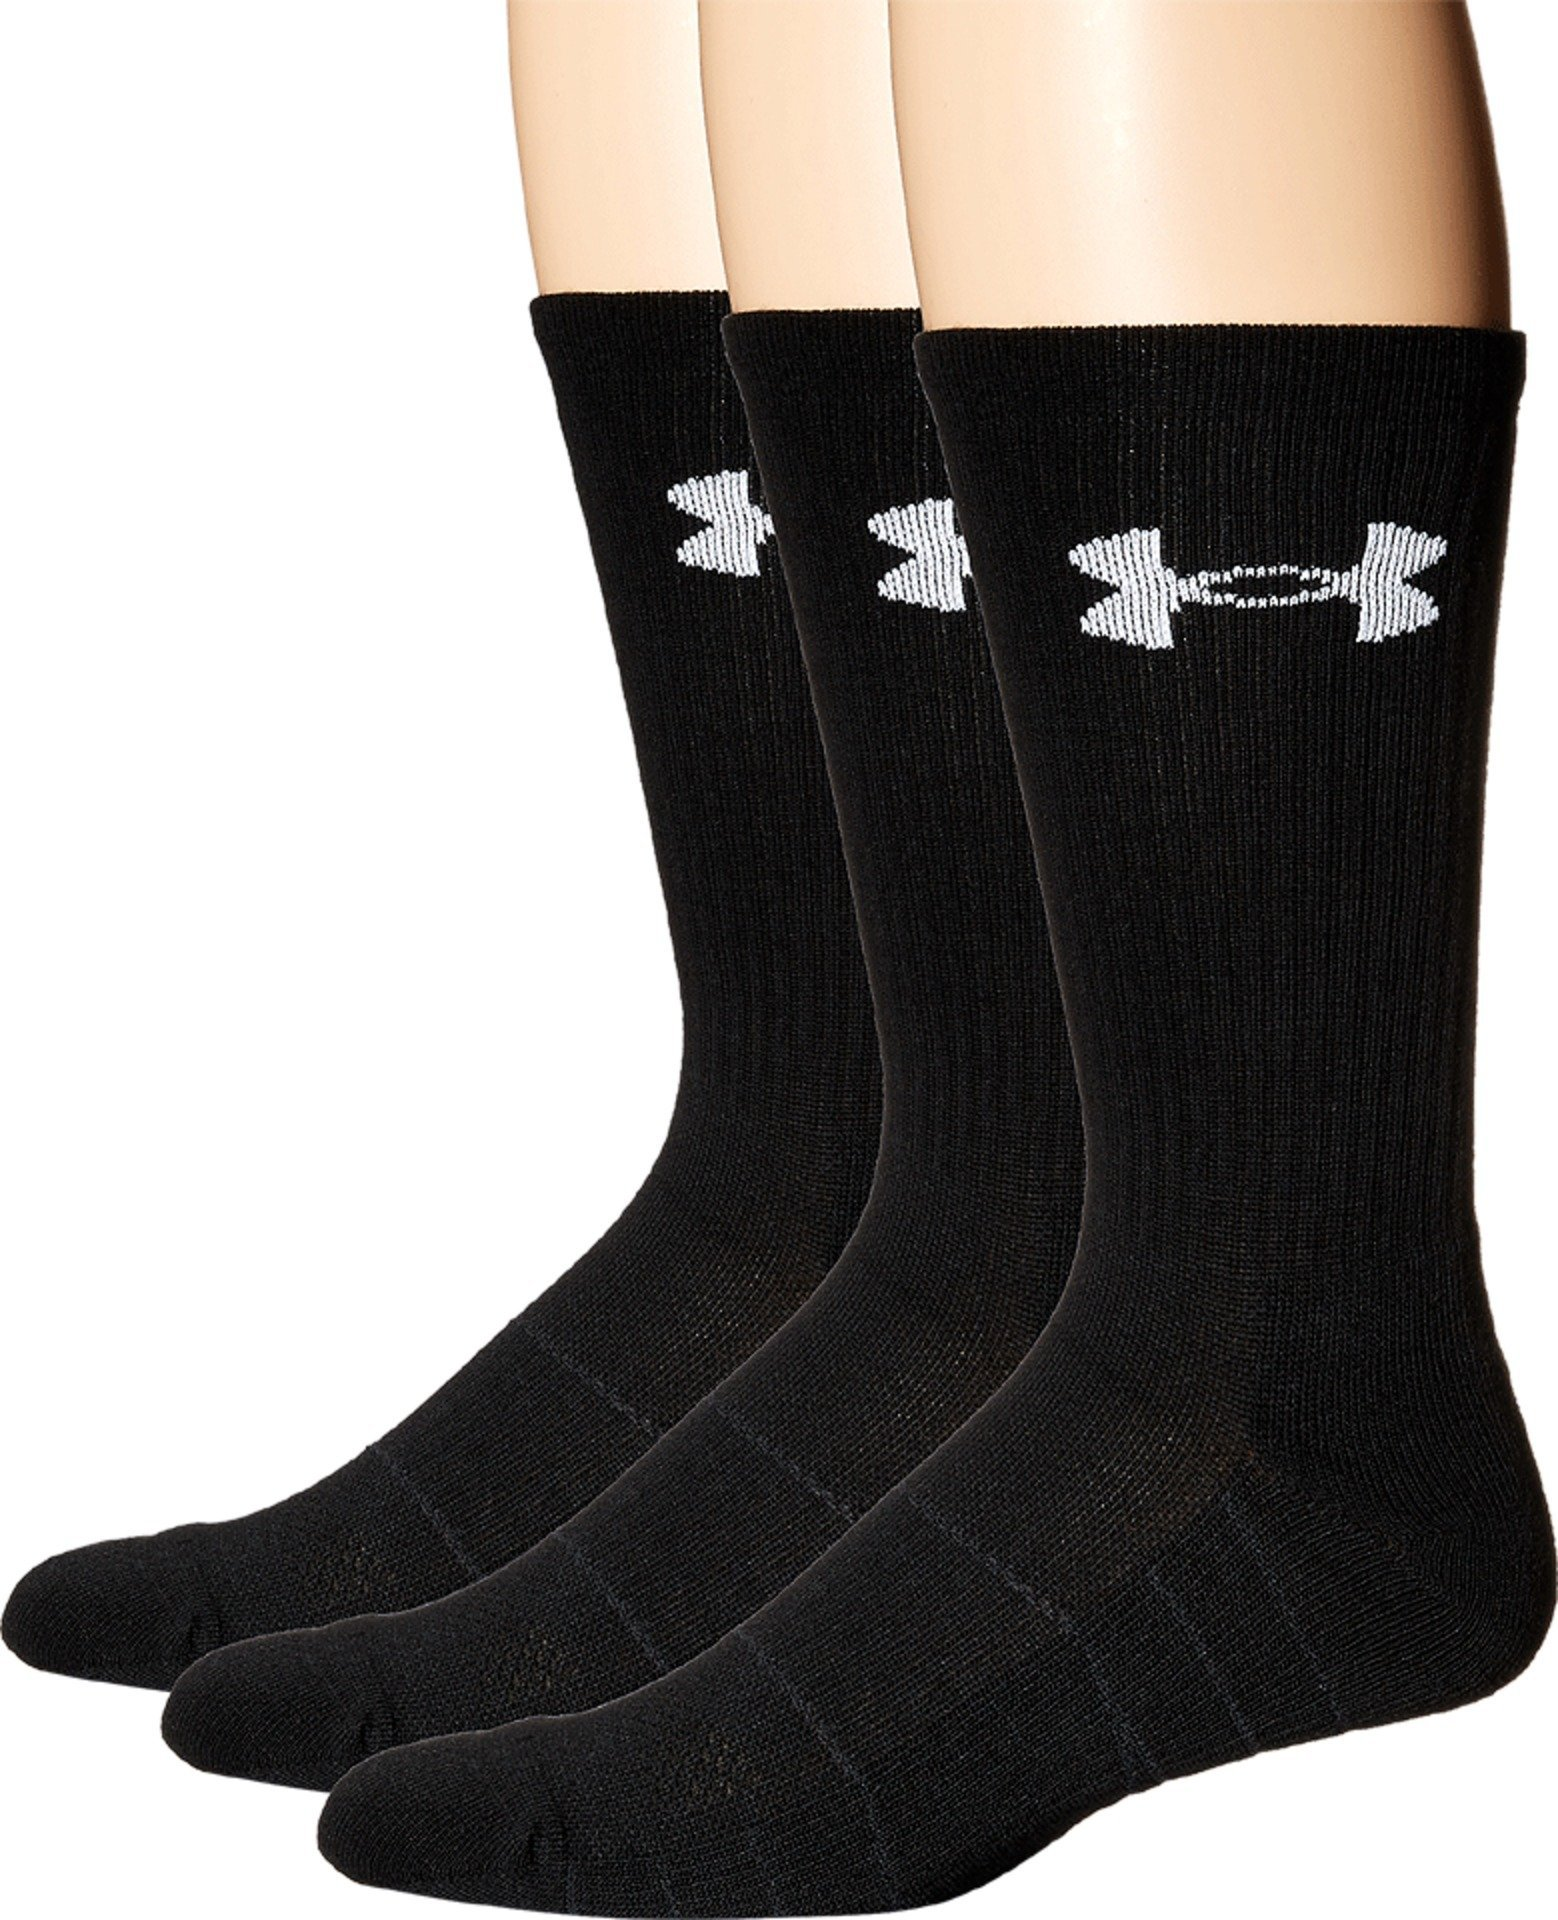 Under Armour Men's Elevated Performance Crew Socks (3 Pack), Black, Large